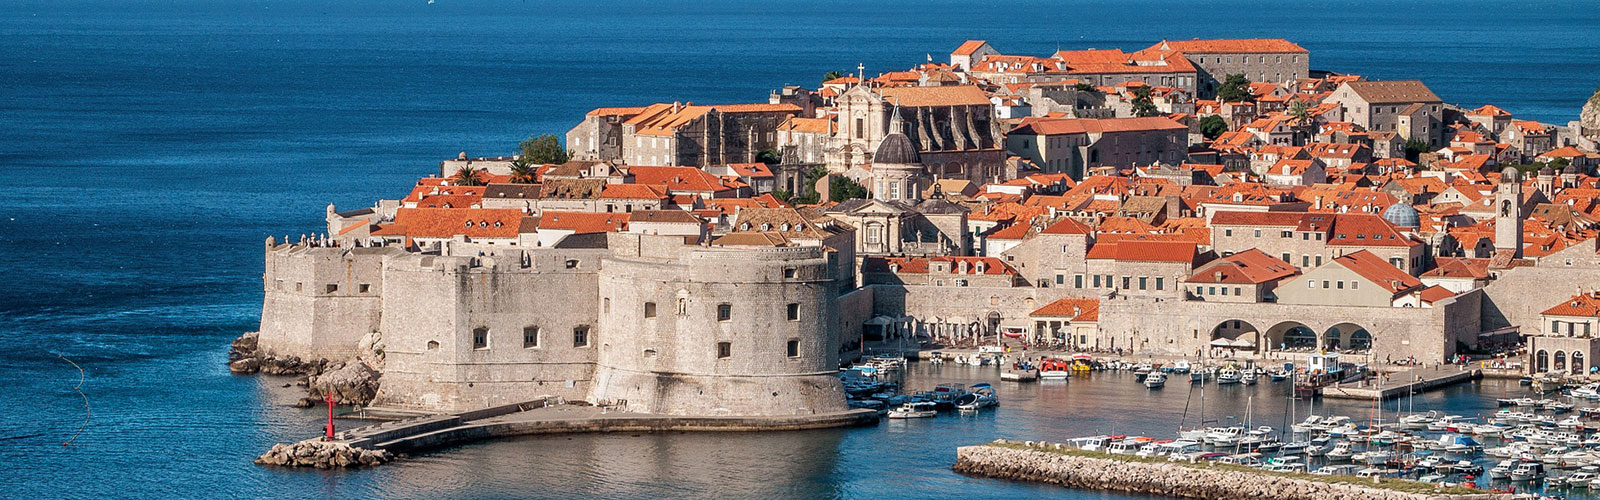 Dubrovnik: The city that was built on the rock, under the flag of freedom and with respect for science